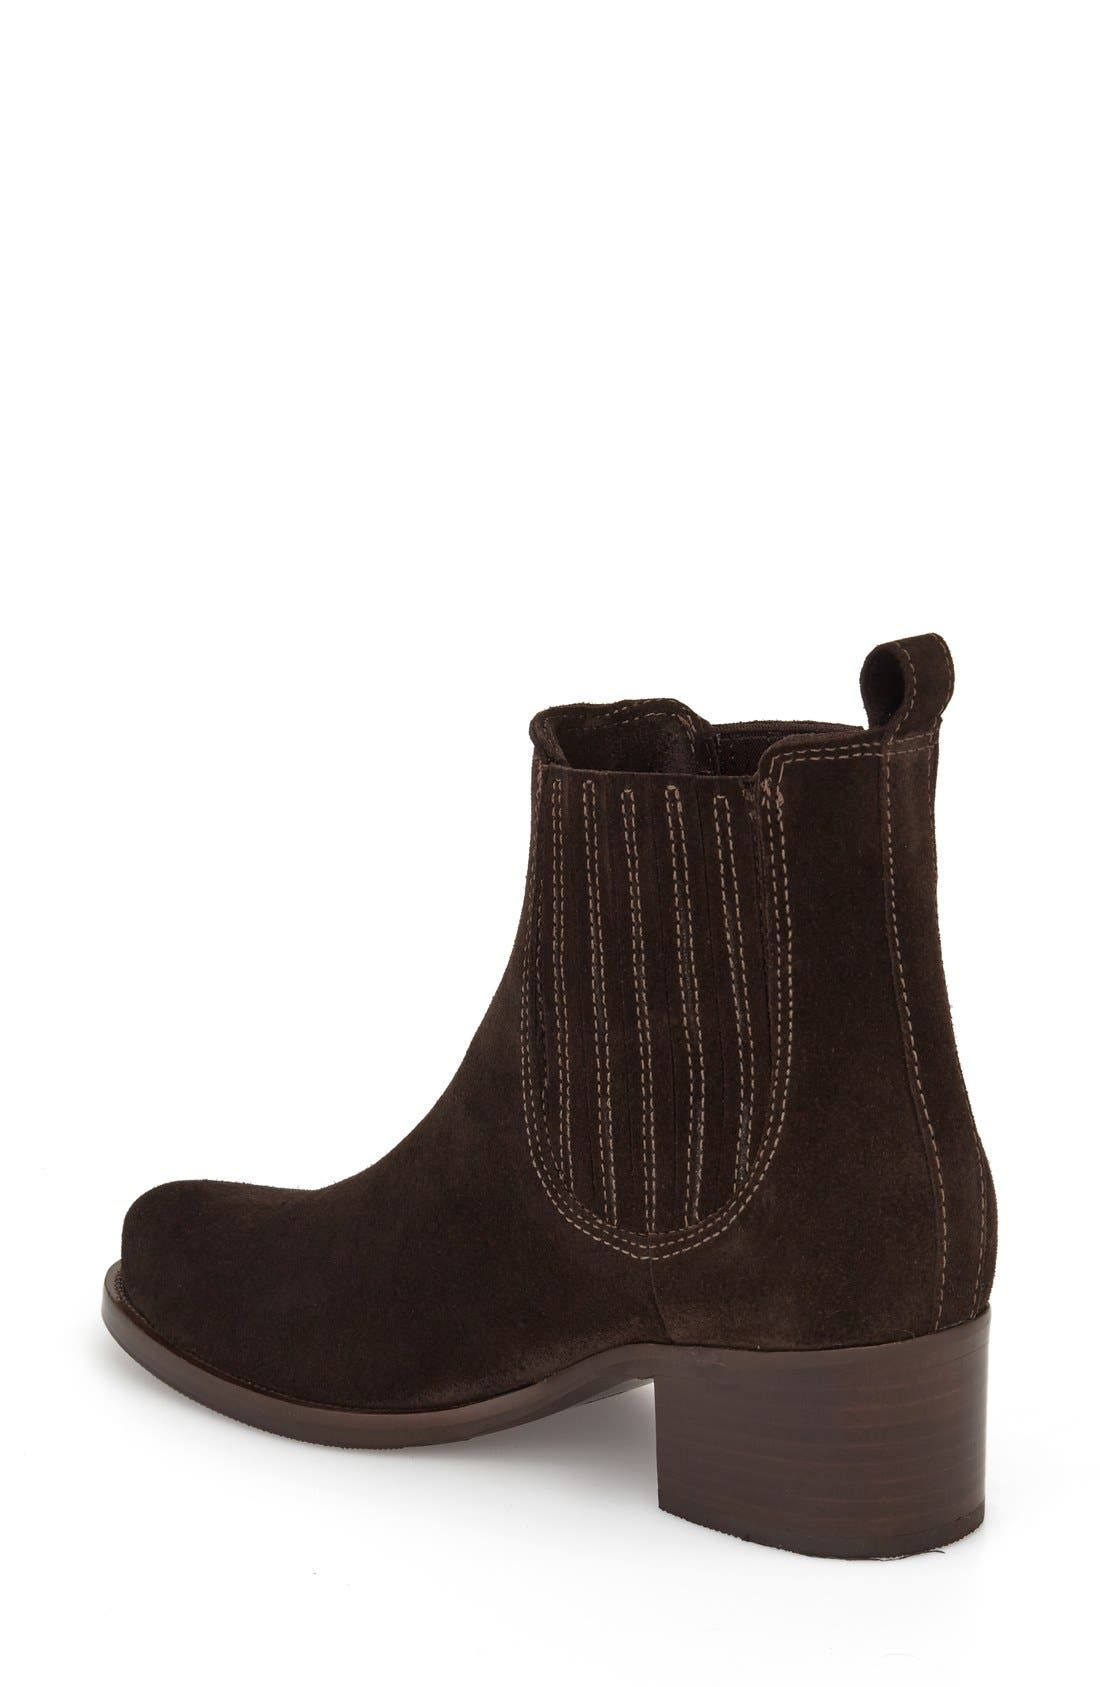 Prince Waterproof Bootie,                             Alternate thumbnail 2, color,                             Brown Suede